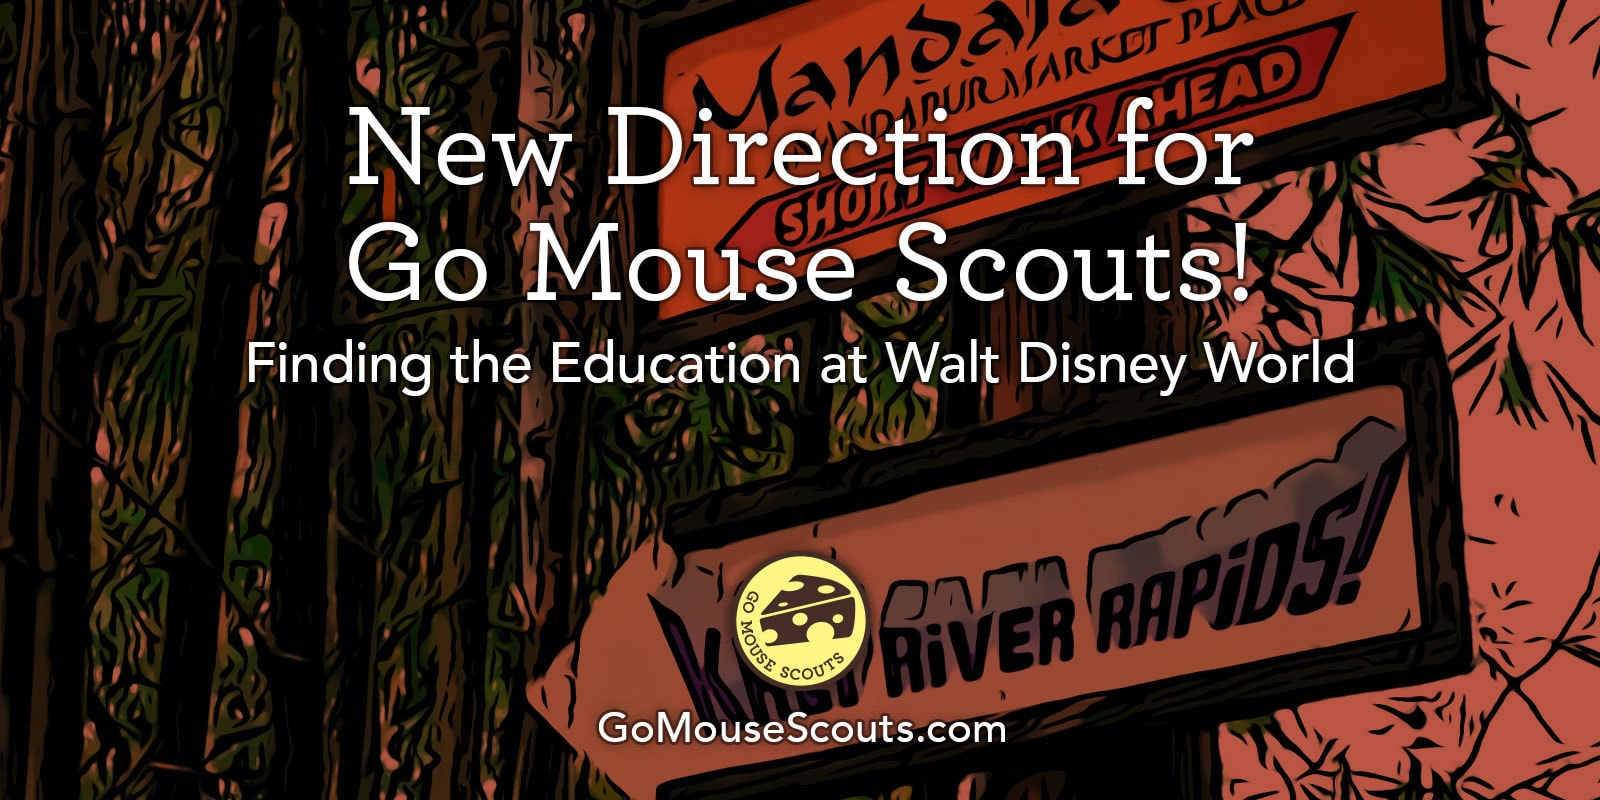 New Direction for Go Mouse Scouts!